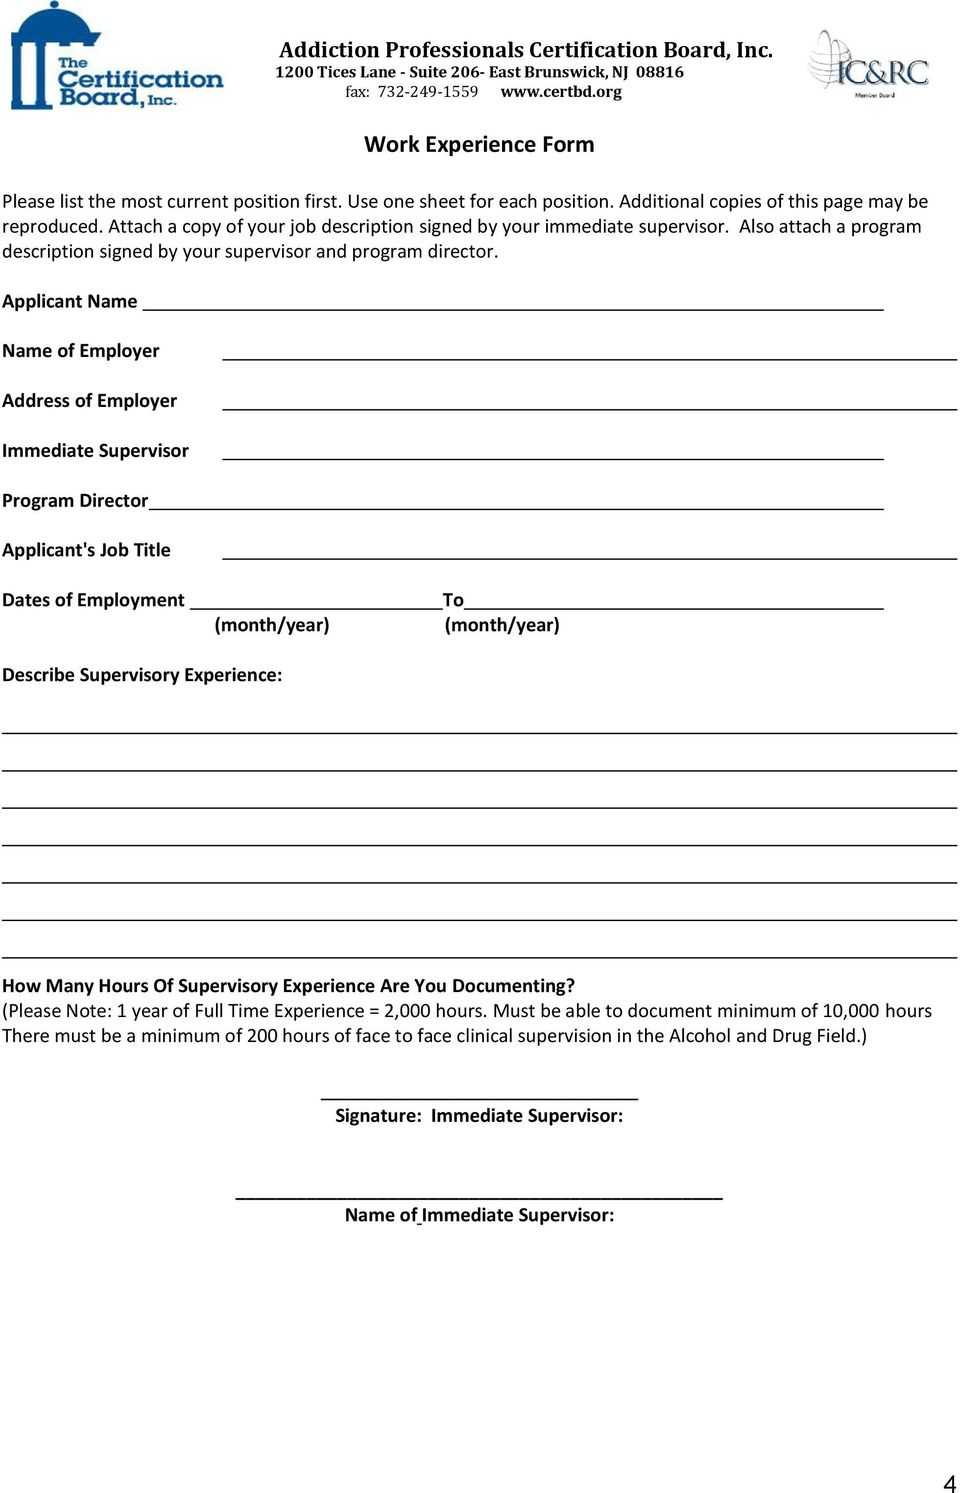 Applicant Name Name of Employer Address of Employer Immediate Supervisor Program Director Applicant's Job Title Dates of Employment (month/year) To (month/year) Describe Supervisory Experience: How